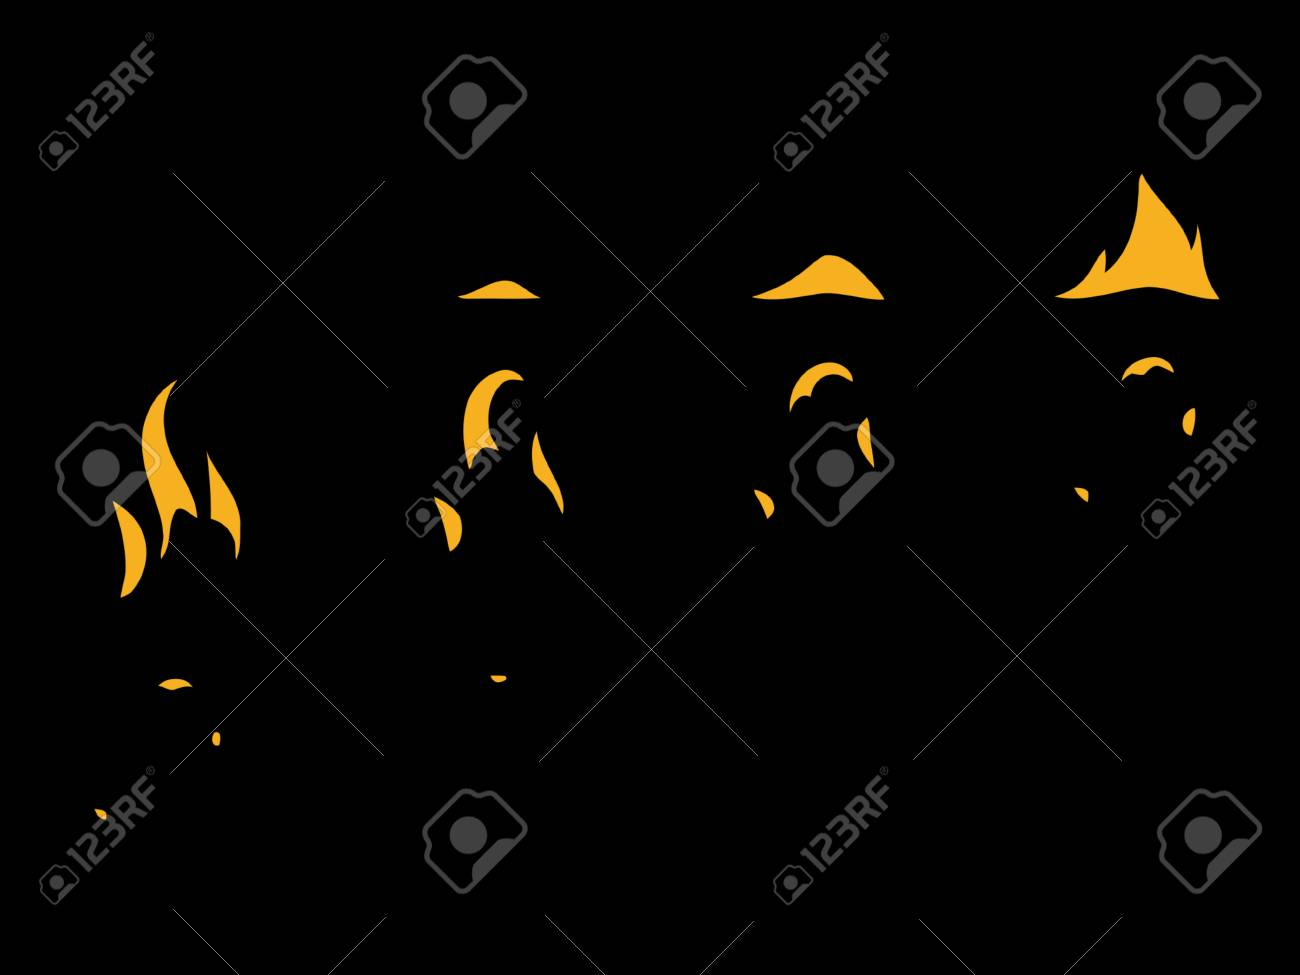 Sprite Sheets Flame Ready For Games Stock Photo Picture And